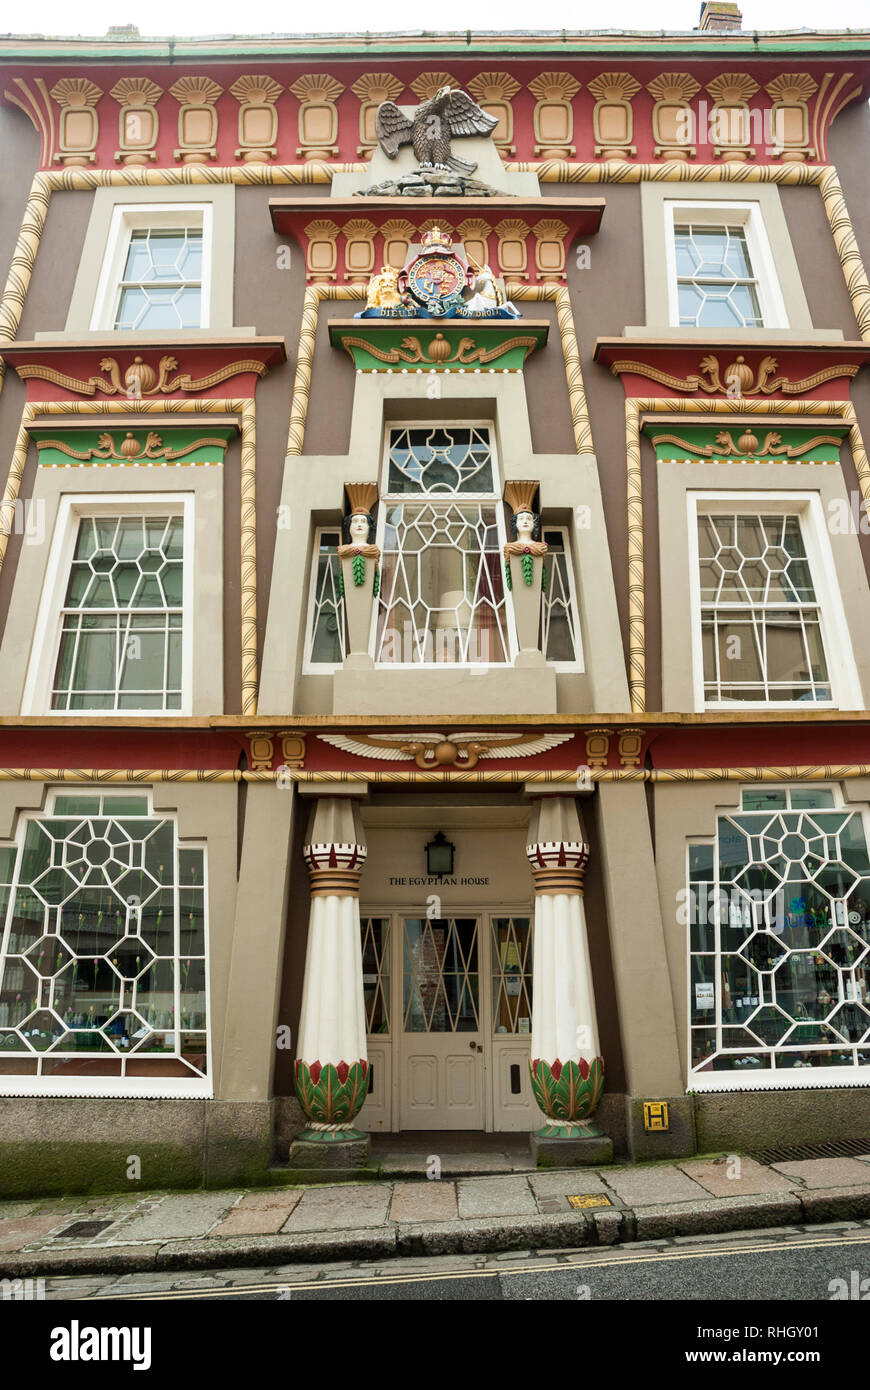 Front elevation of the amazing colourful facade and architecture of the Egyptian House, Chapel Street, Penzance, Cornwall. - Stock Image